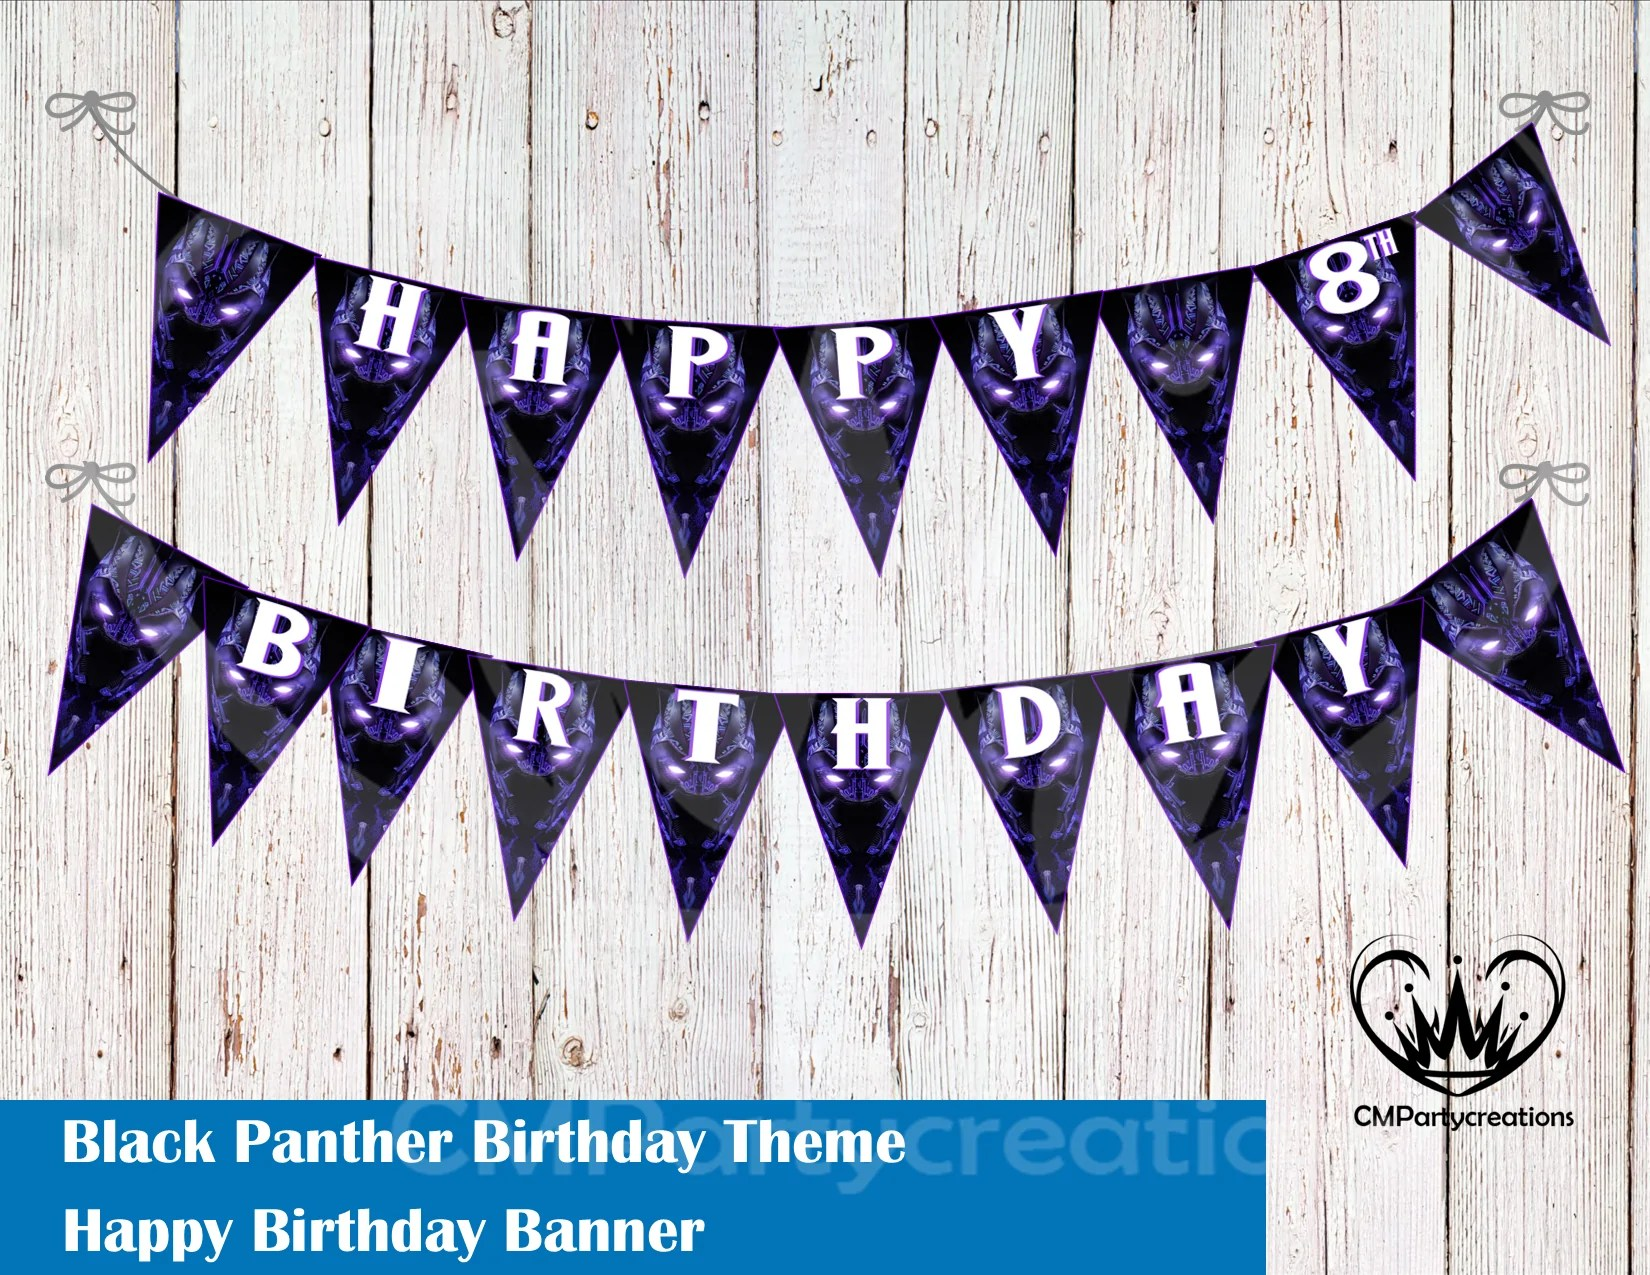 Black Panther Banner Birthday Party Cmpartycreations